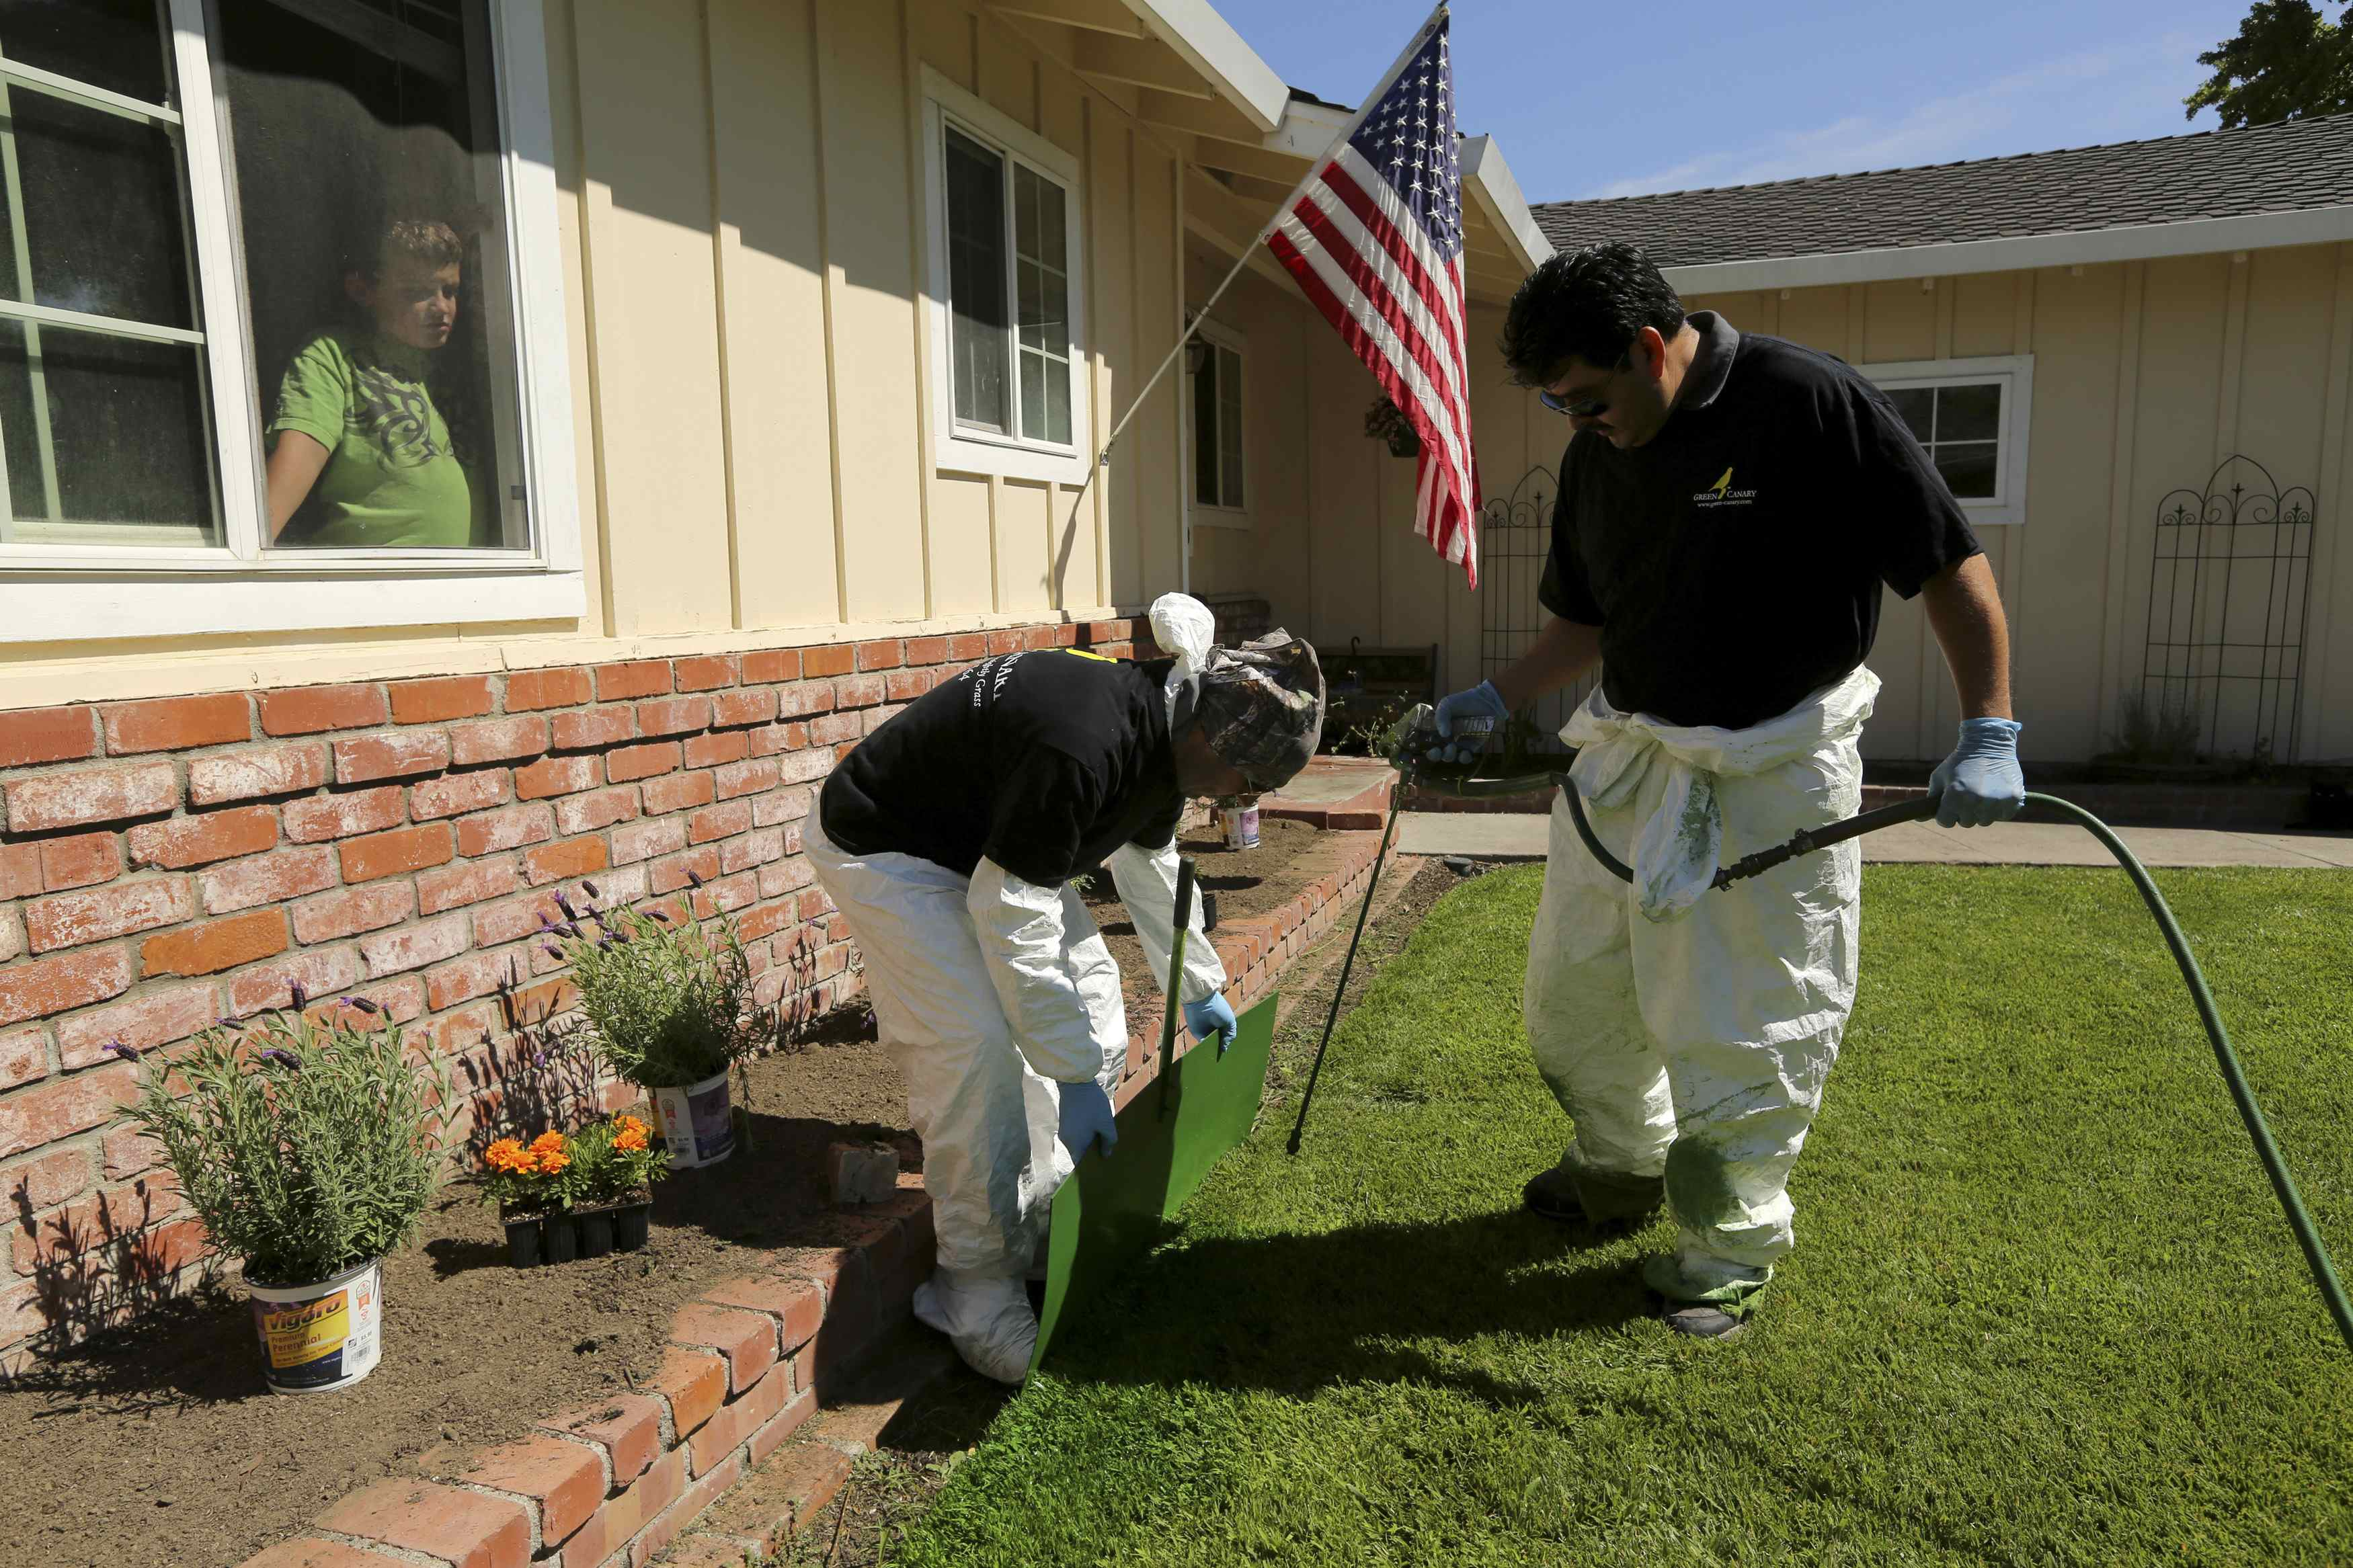 Colby Feece (L) looks out the window of his home as workers with Green Canary apply a diluted concentrate of aqueous pigment to the front lawn of his home in San Jose, California July 24, 2014. The company said it uses the coloring application to improve property value, conserve water, and reduce maintenance costs. REUTERS/Robert Galbraith (UNITED STATES - Tags: ENVIRONMENT)